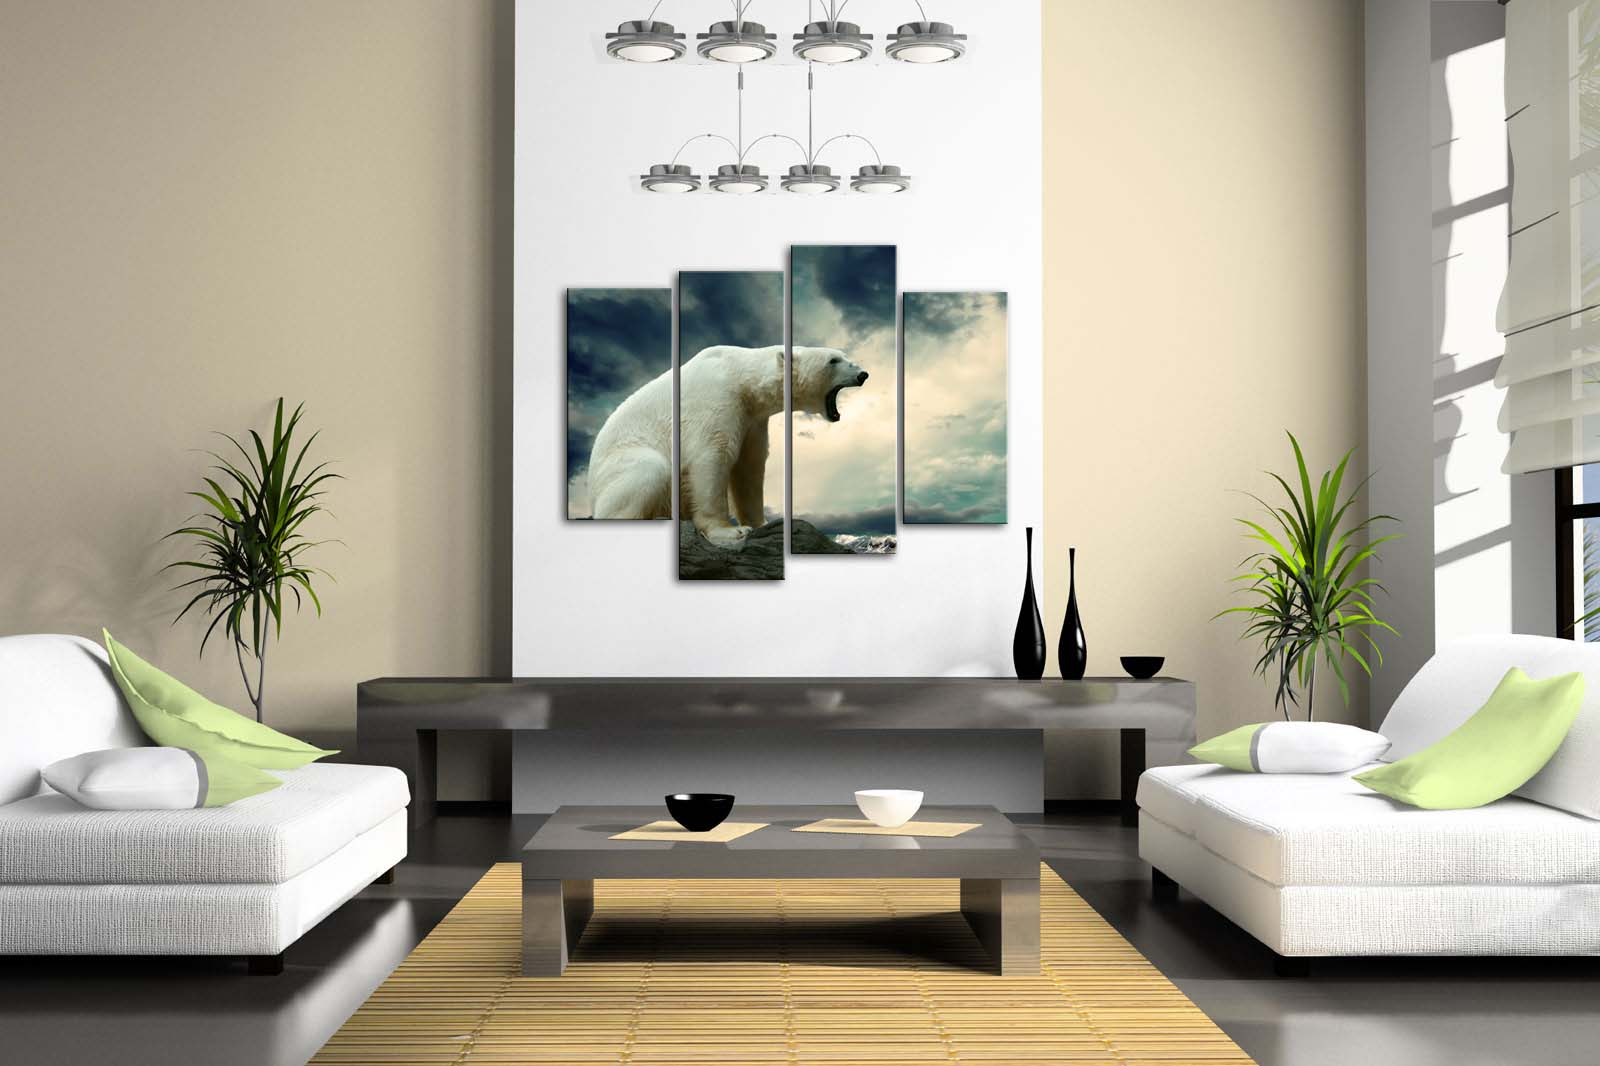 Framed Wall Art Pictures Polar Bear Rock Beach Canvas Print Animal Posters With Wooden Frames For Home Living Room Decor - 2